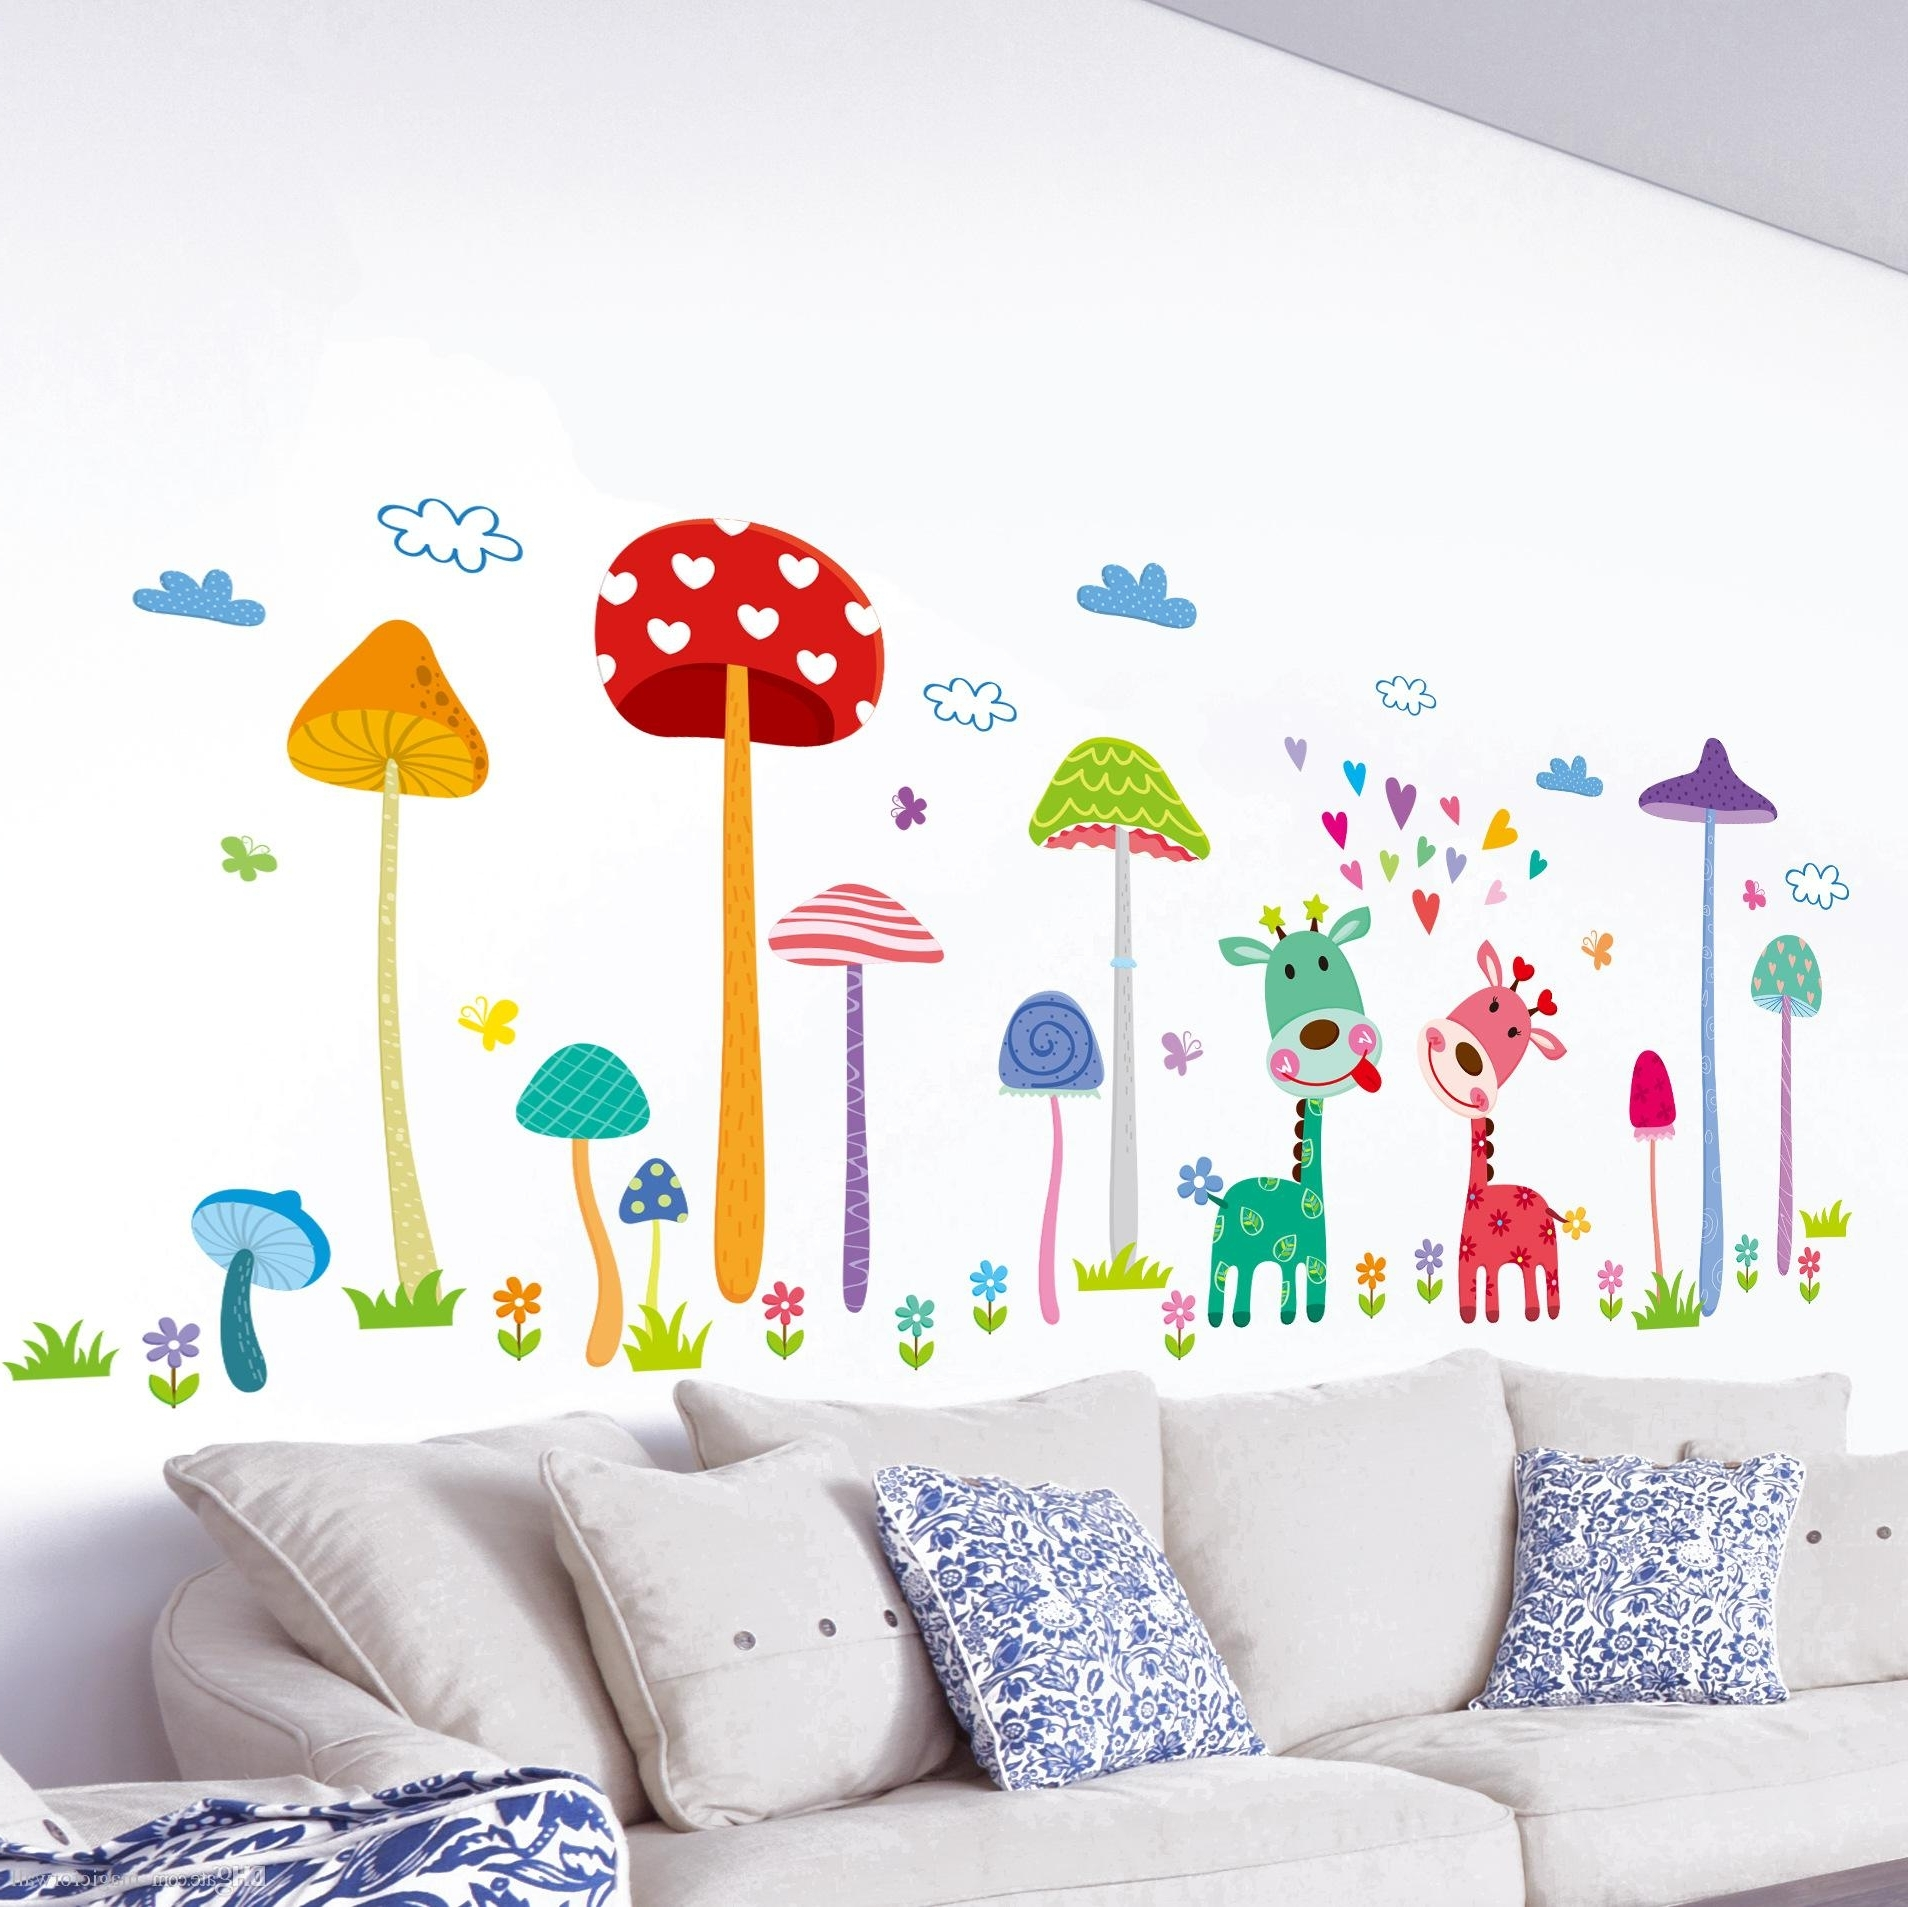 Home Wall Art With Regard To Best And Newest Forest Mushroom Deer Animals Home Wall Art Mural Decor Kids Babies (View 15 of 15)